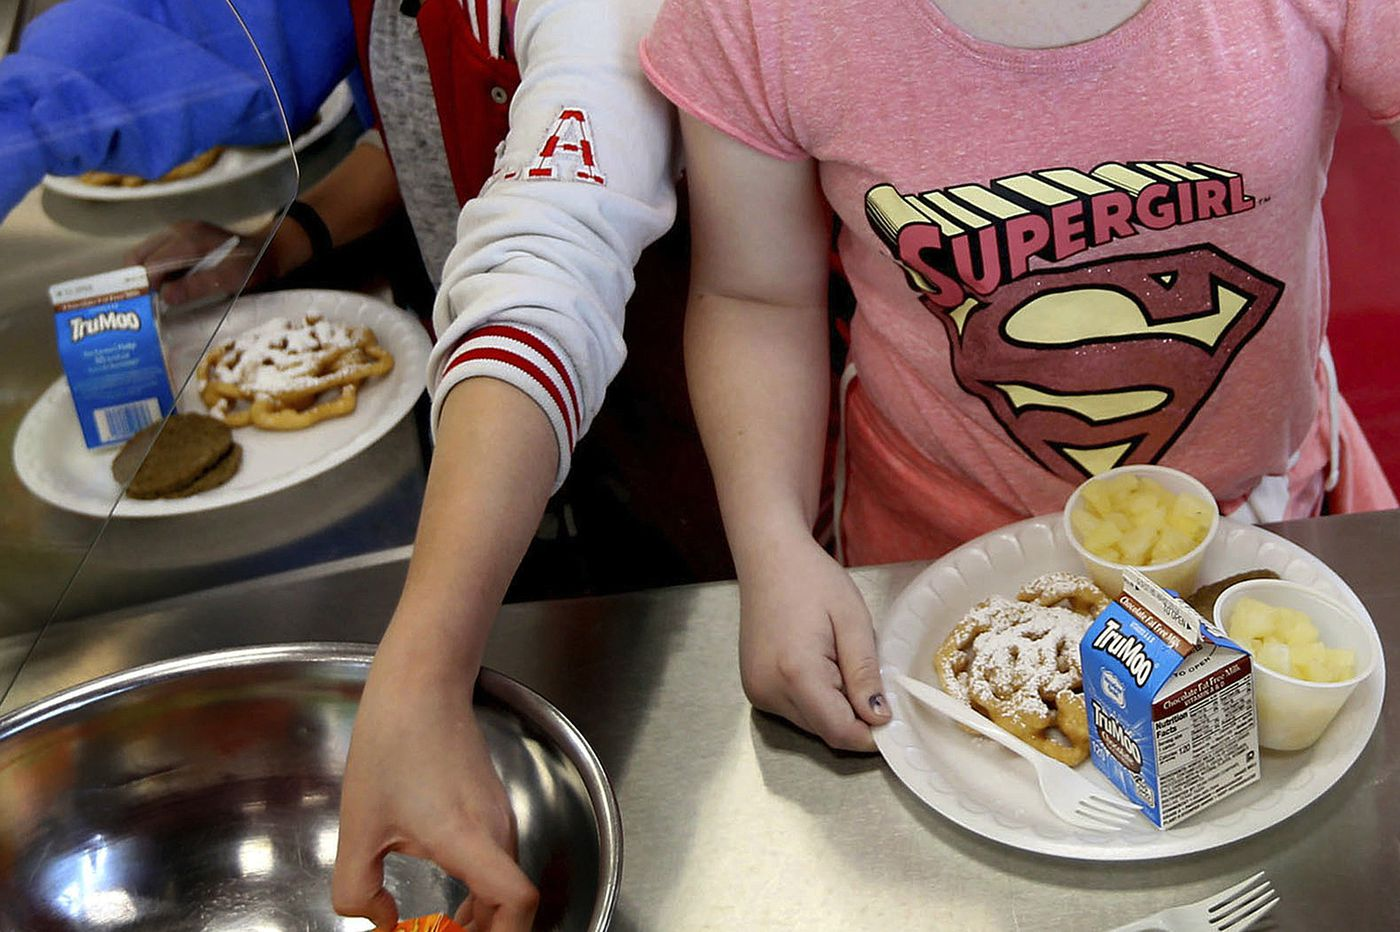 N.J. school-lunch policies: Parents must pay delinquent meal fees or face possible state probe for child abuse